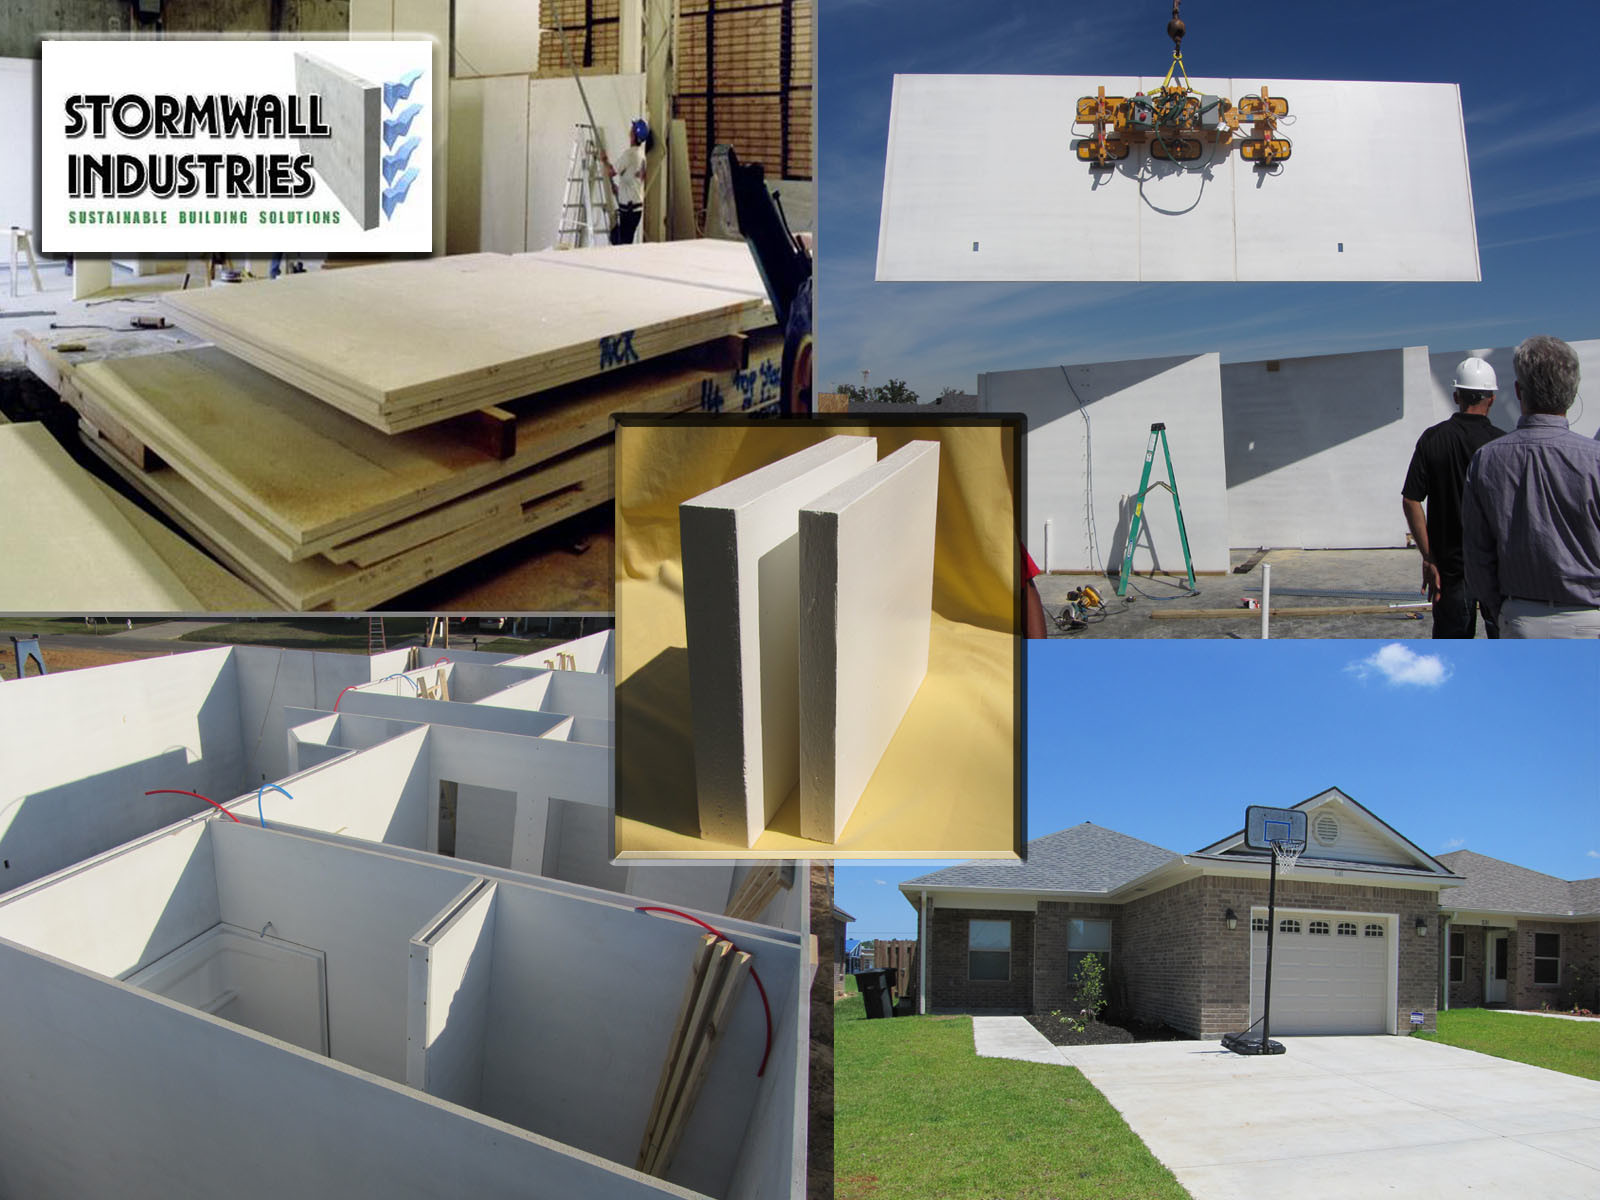 StormWall Panels. Image Courtesy of StormWall Industries via Cradle to Cradle